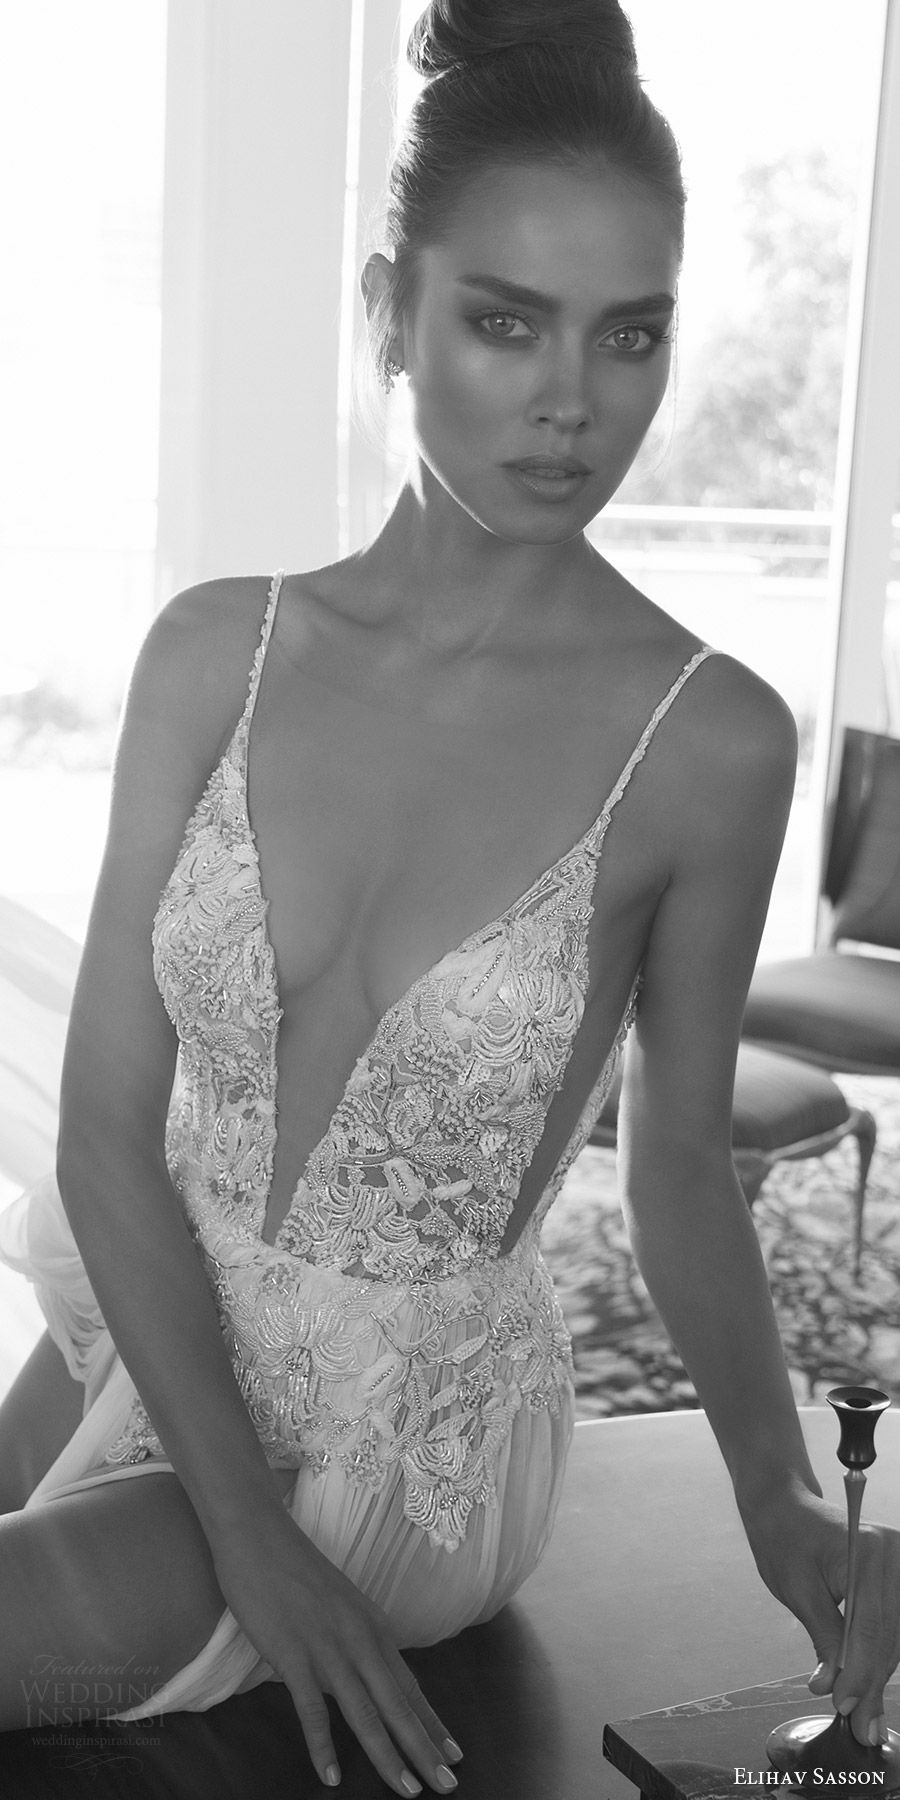 elihav sasson spring 2018 bridal sleeveless spaghetti straps deep v neck sheer skirt a line wedding dress (vj 009) fv sexy glam